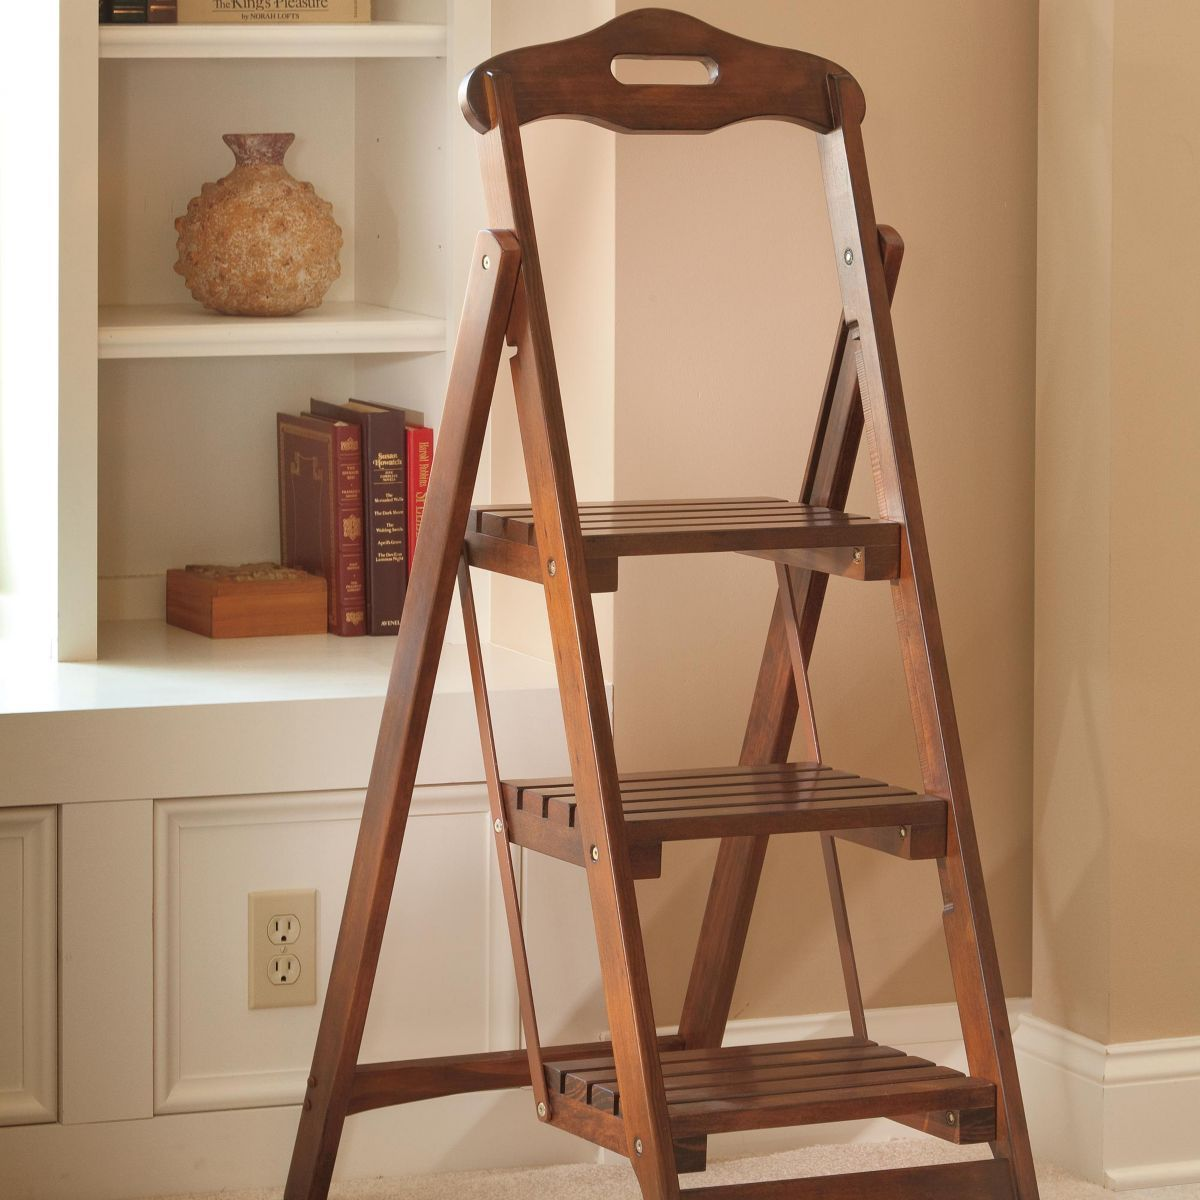 3 step folding stool home decor likes stool ladder folding stool rh pinterest com